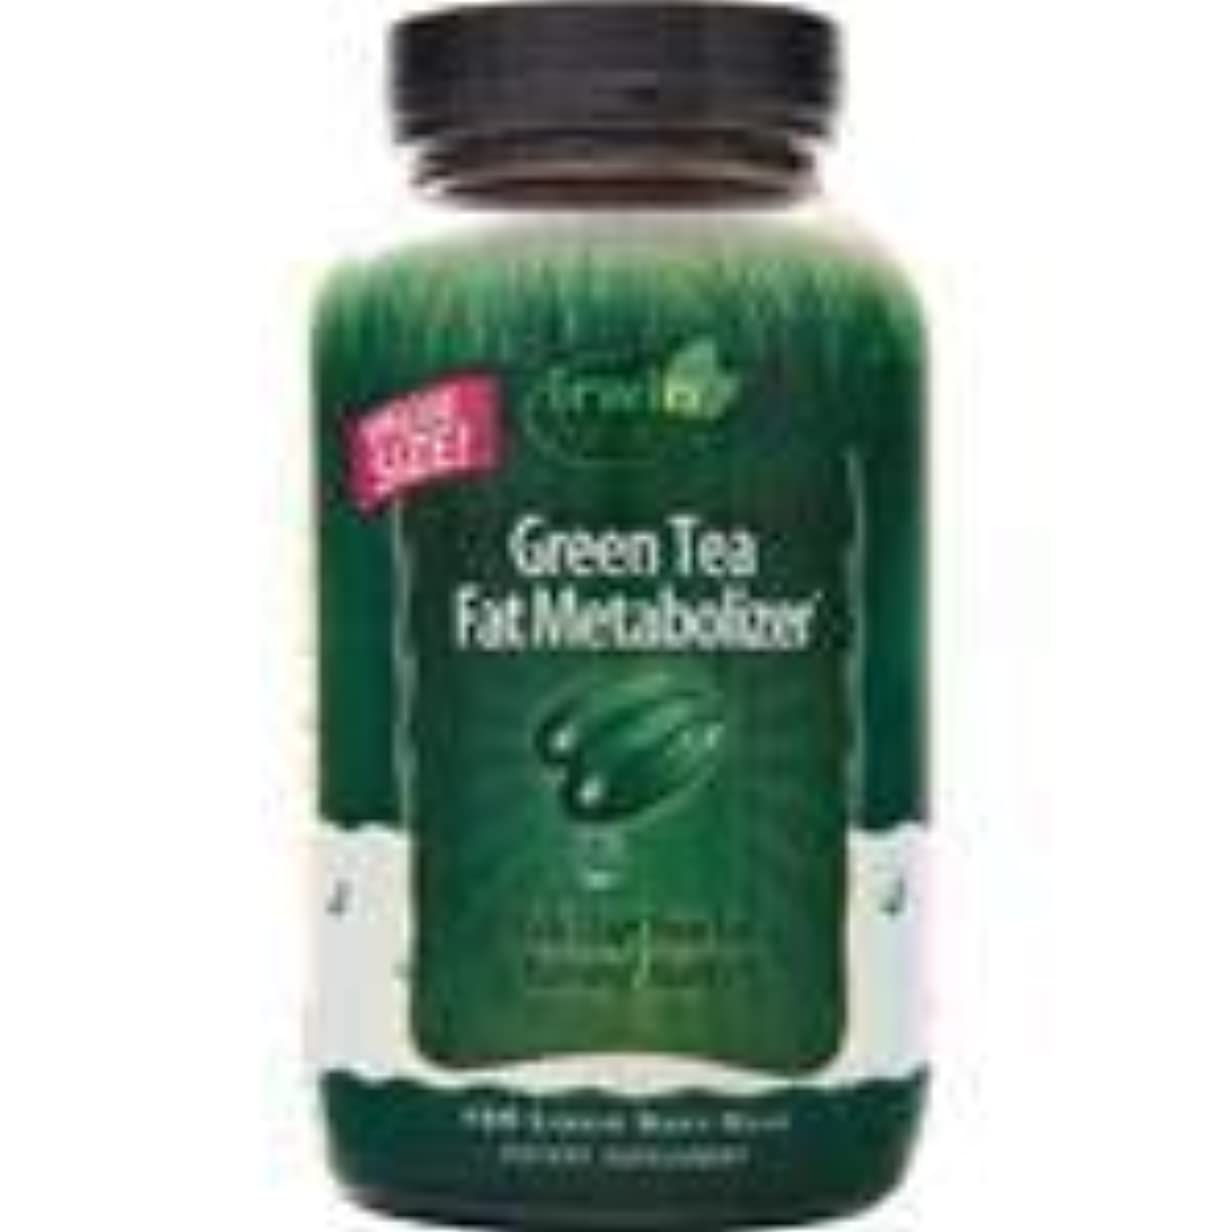 Green Tea Fat Metabolizer 150 sgels 2個パック